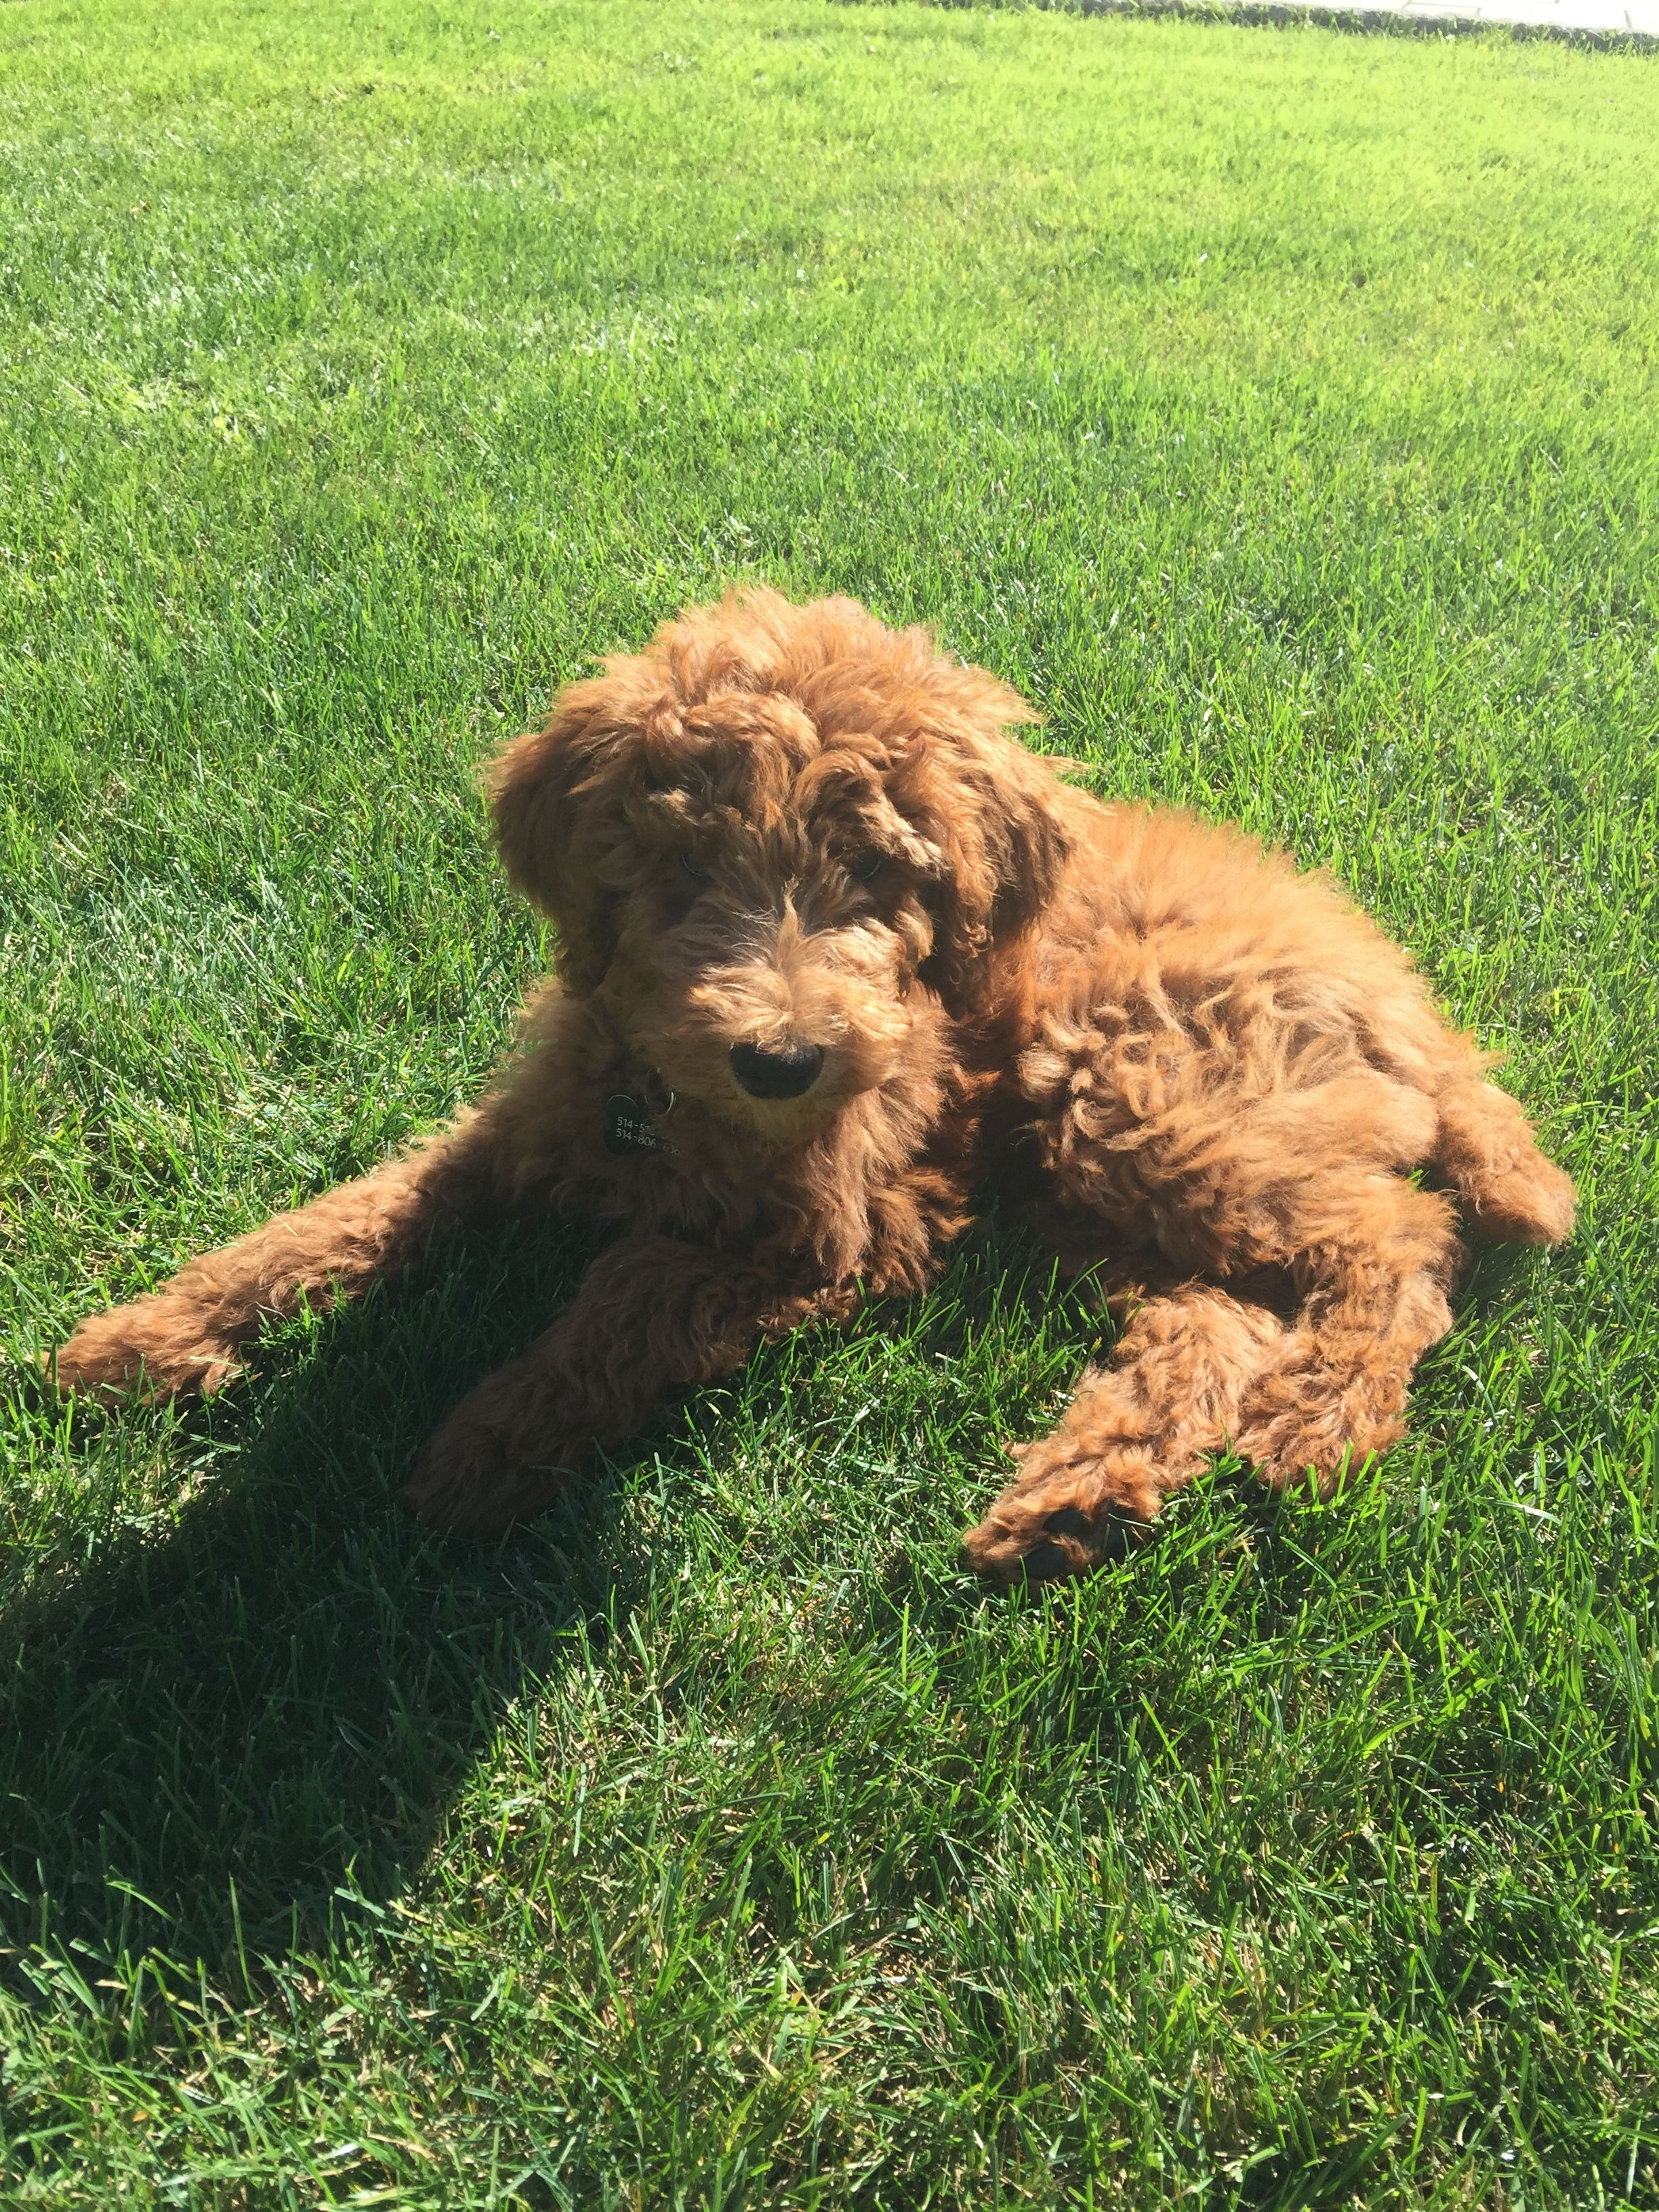 Standard Poodle puppy , Bella Poodle, Dogs, Stop animal